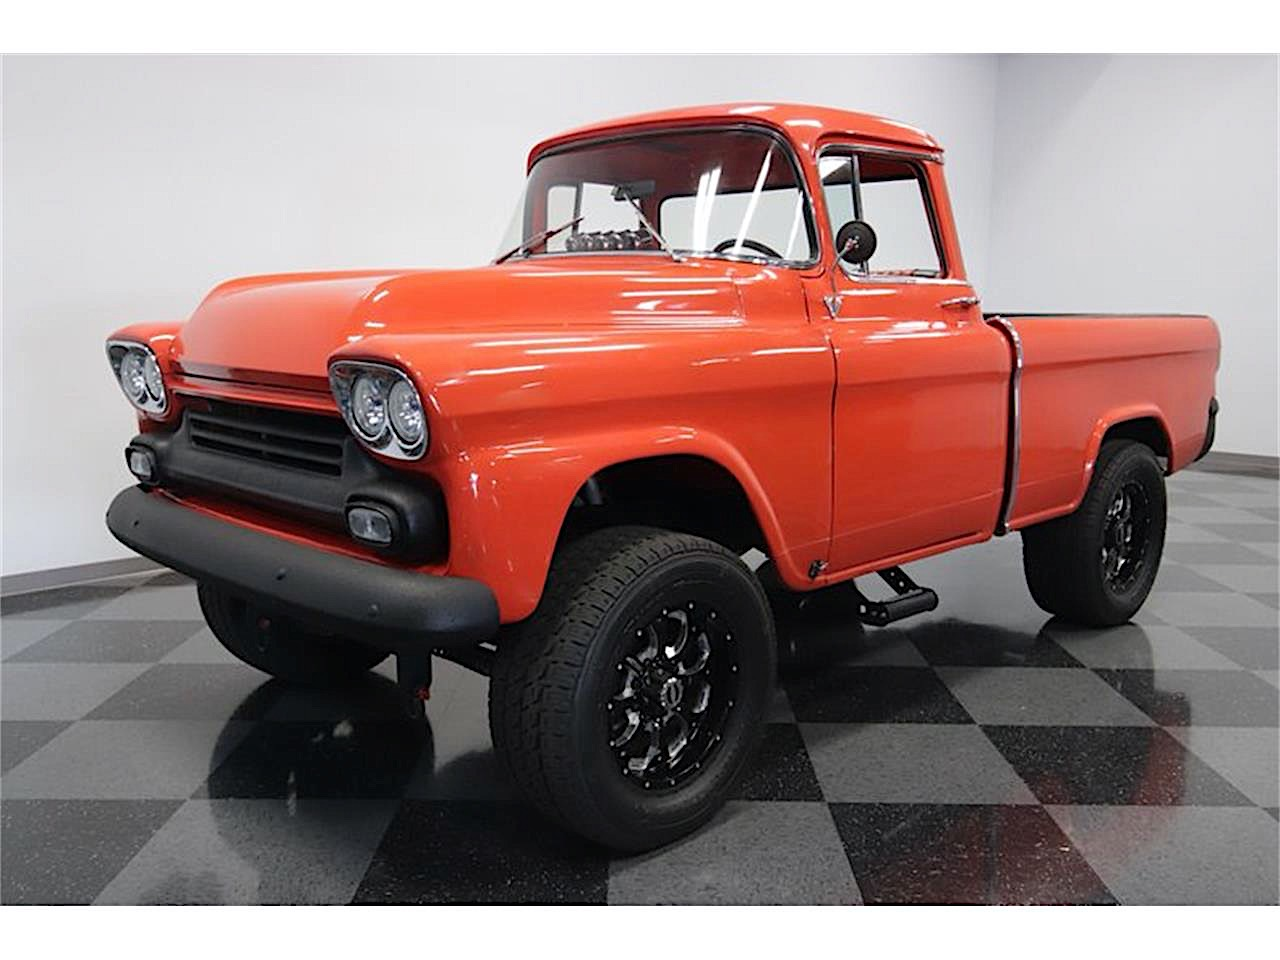 1958 Chevrolet Cameo Dates 1957 Gmc Chassis And This Is Their Red And Black Baby Autoevolution